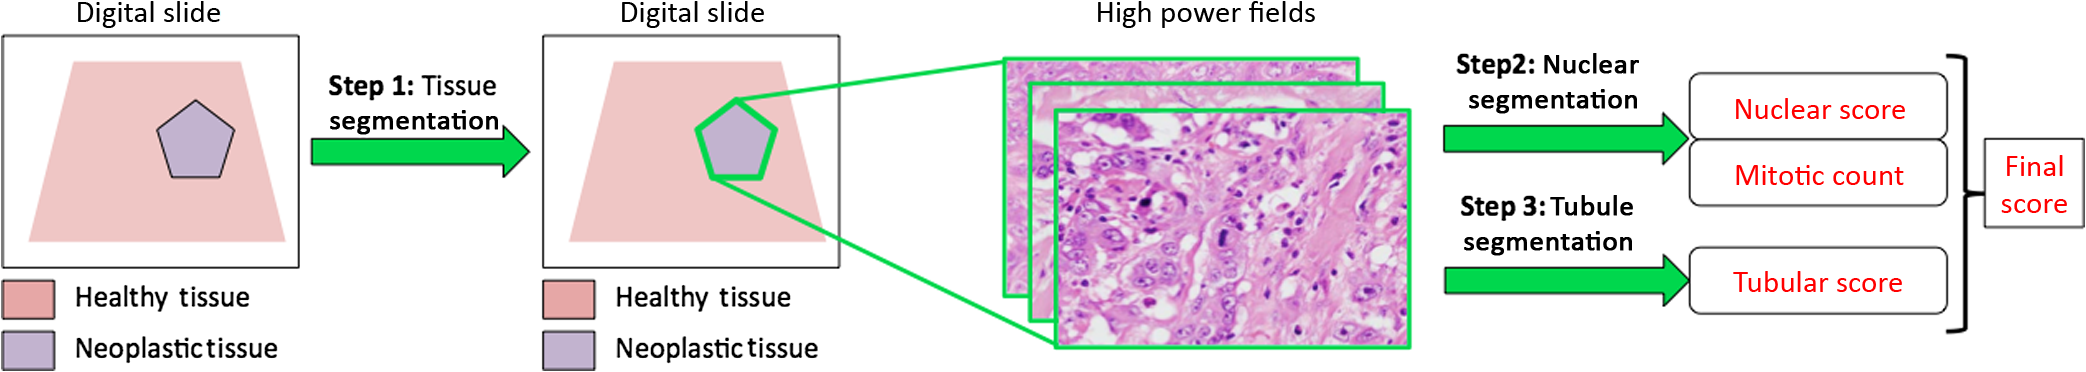 Invasive ductal breast carcinoma detector that is robust to